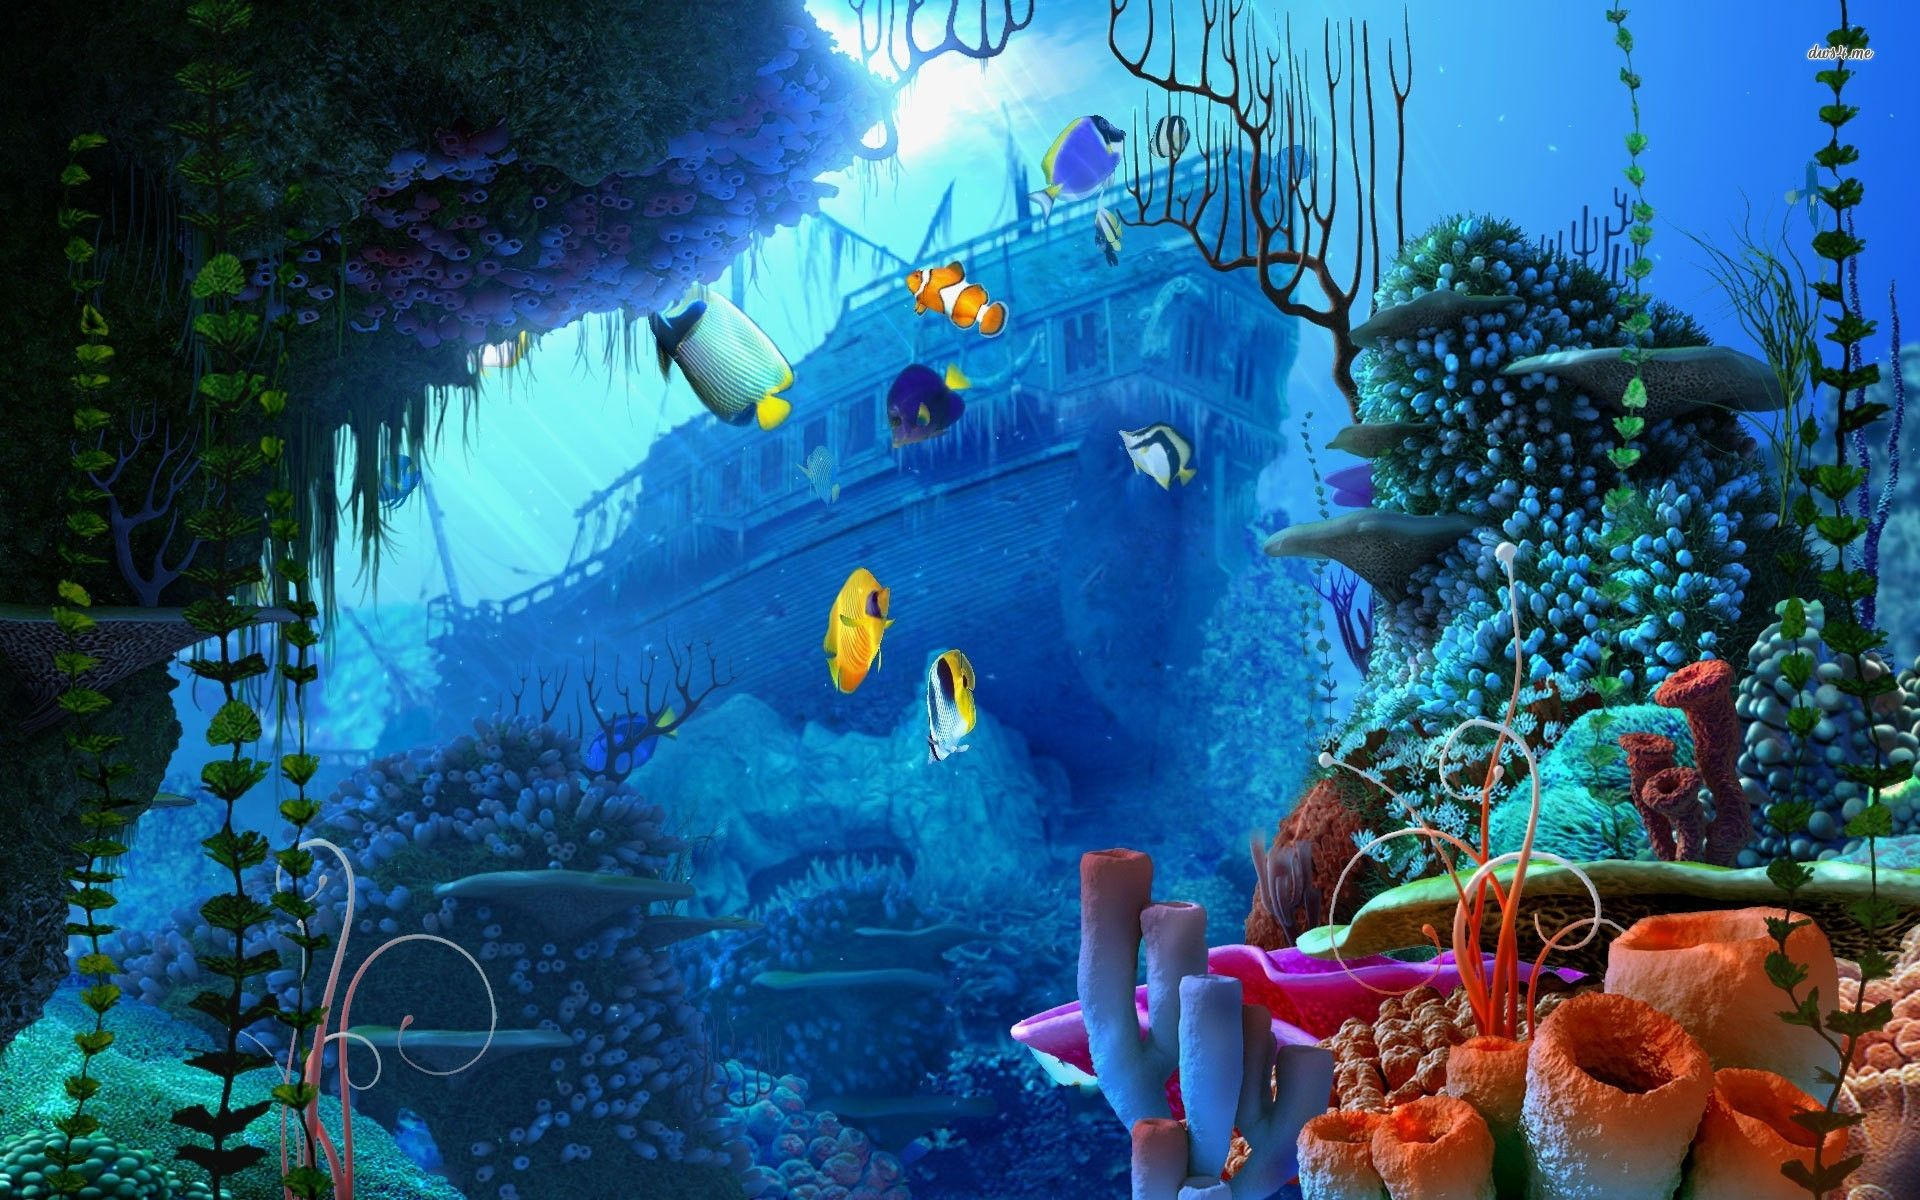 Undersea Wallpaper HD 3Ka Underwater wallpaper